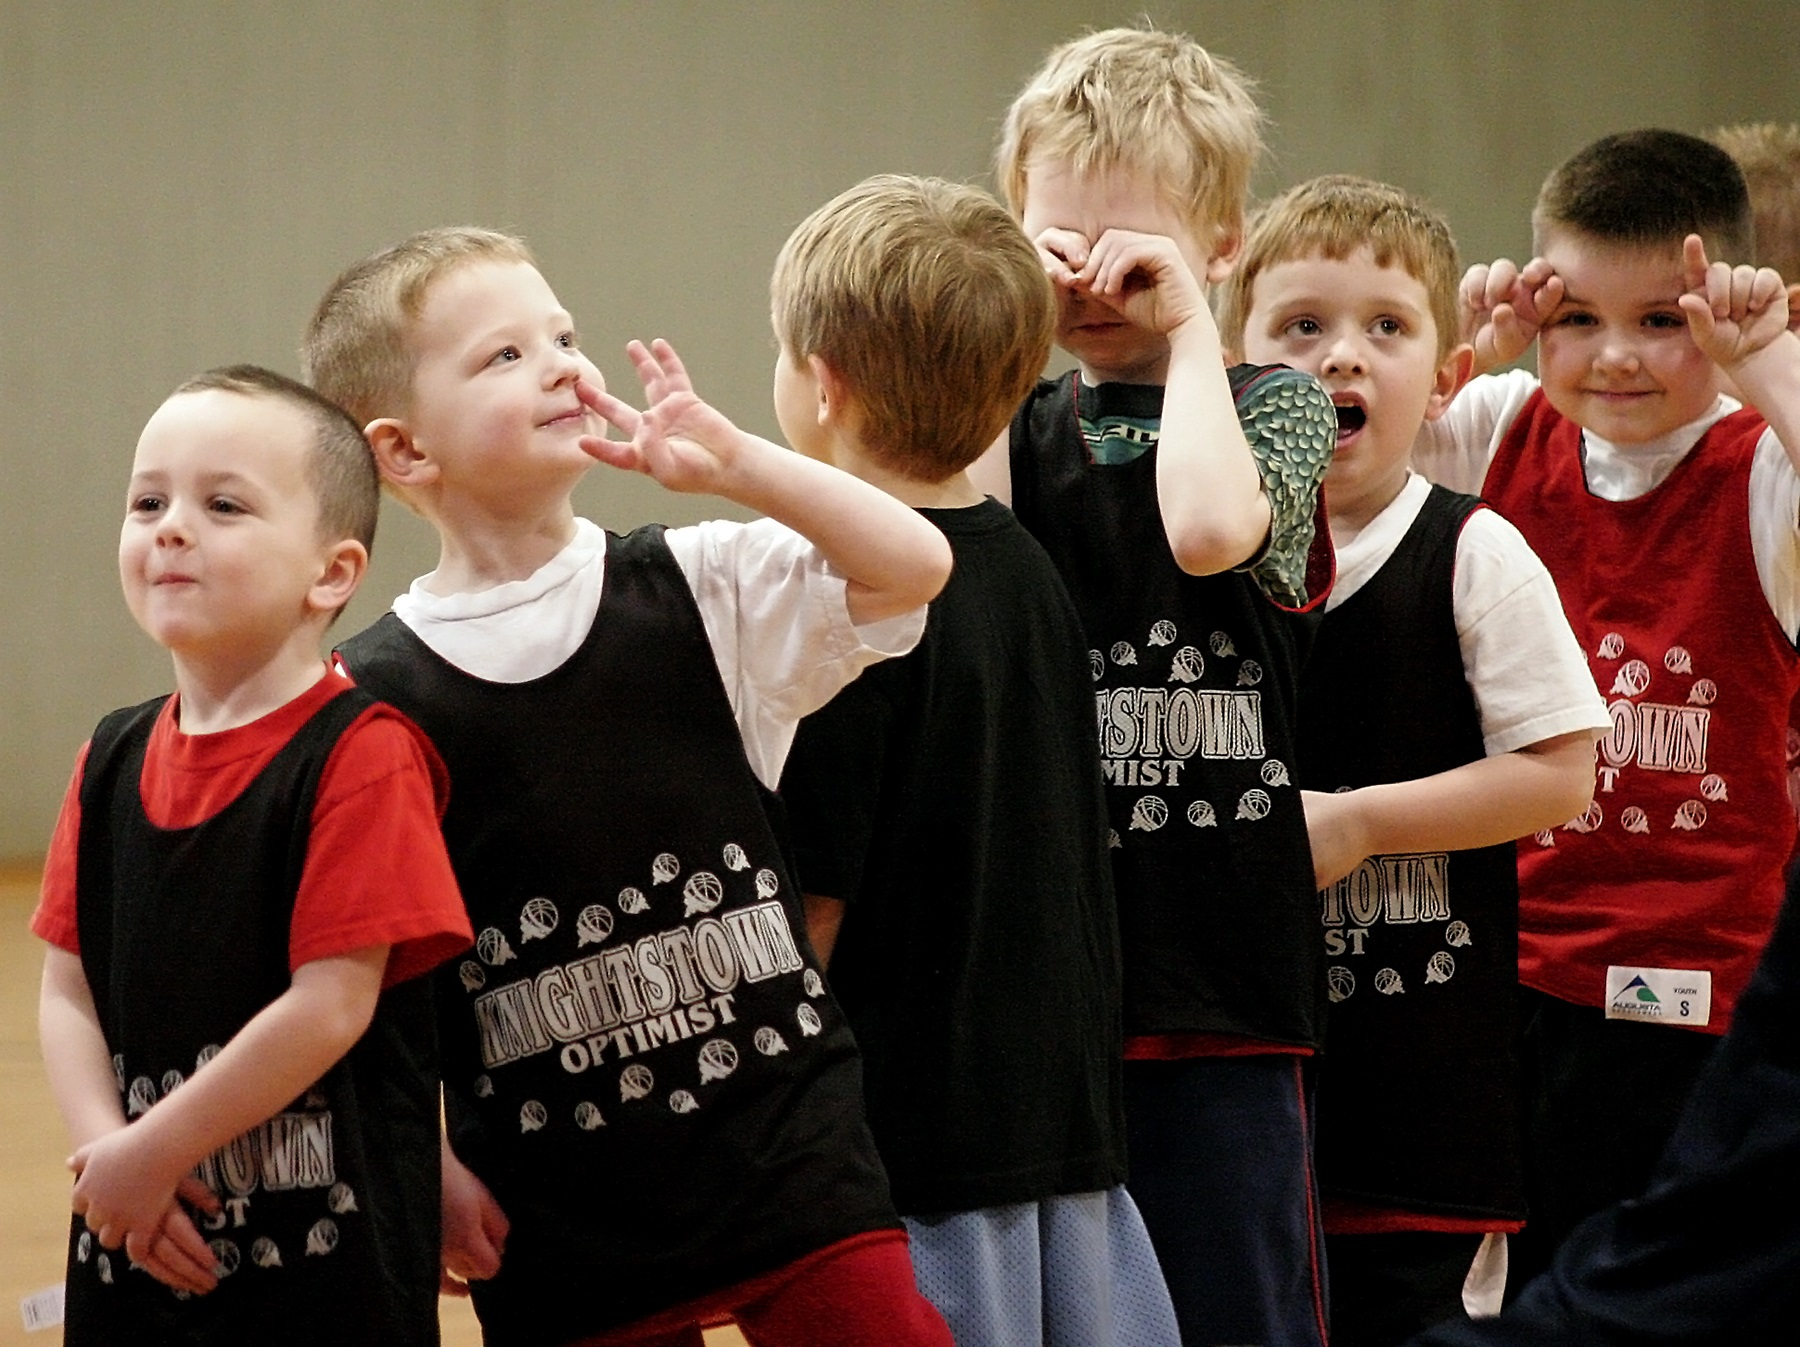 Put 10 little boys in a line and make them wait to shoot free throws. Then, sit at a distance with a telephoto lens and watch the hilarity as they bide their time waiting their turns. Ten different kids equates to 10 different ways of doing that.